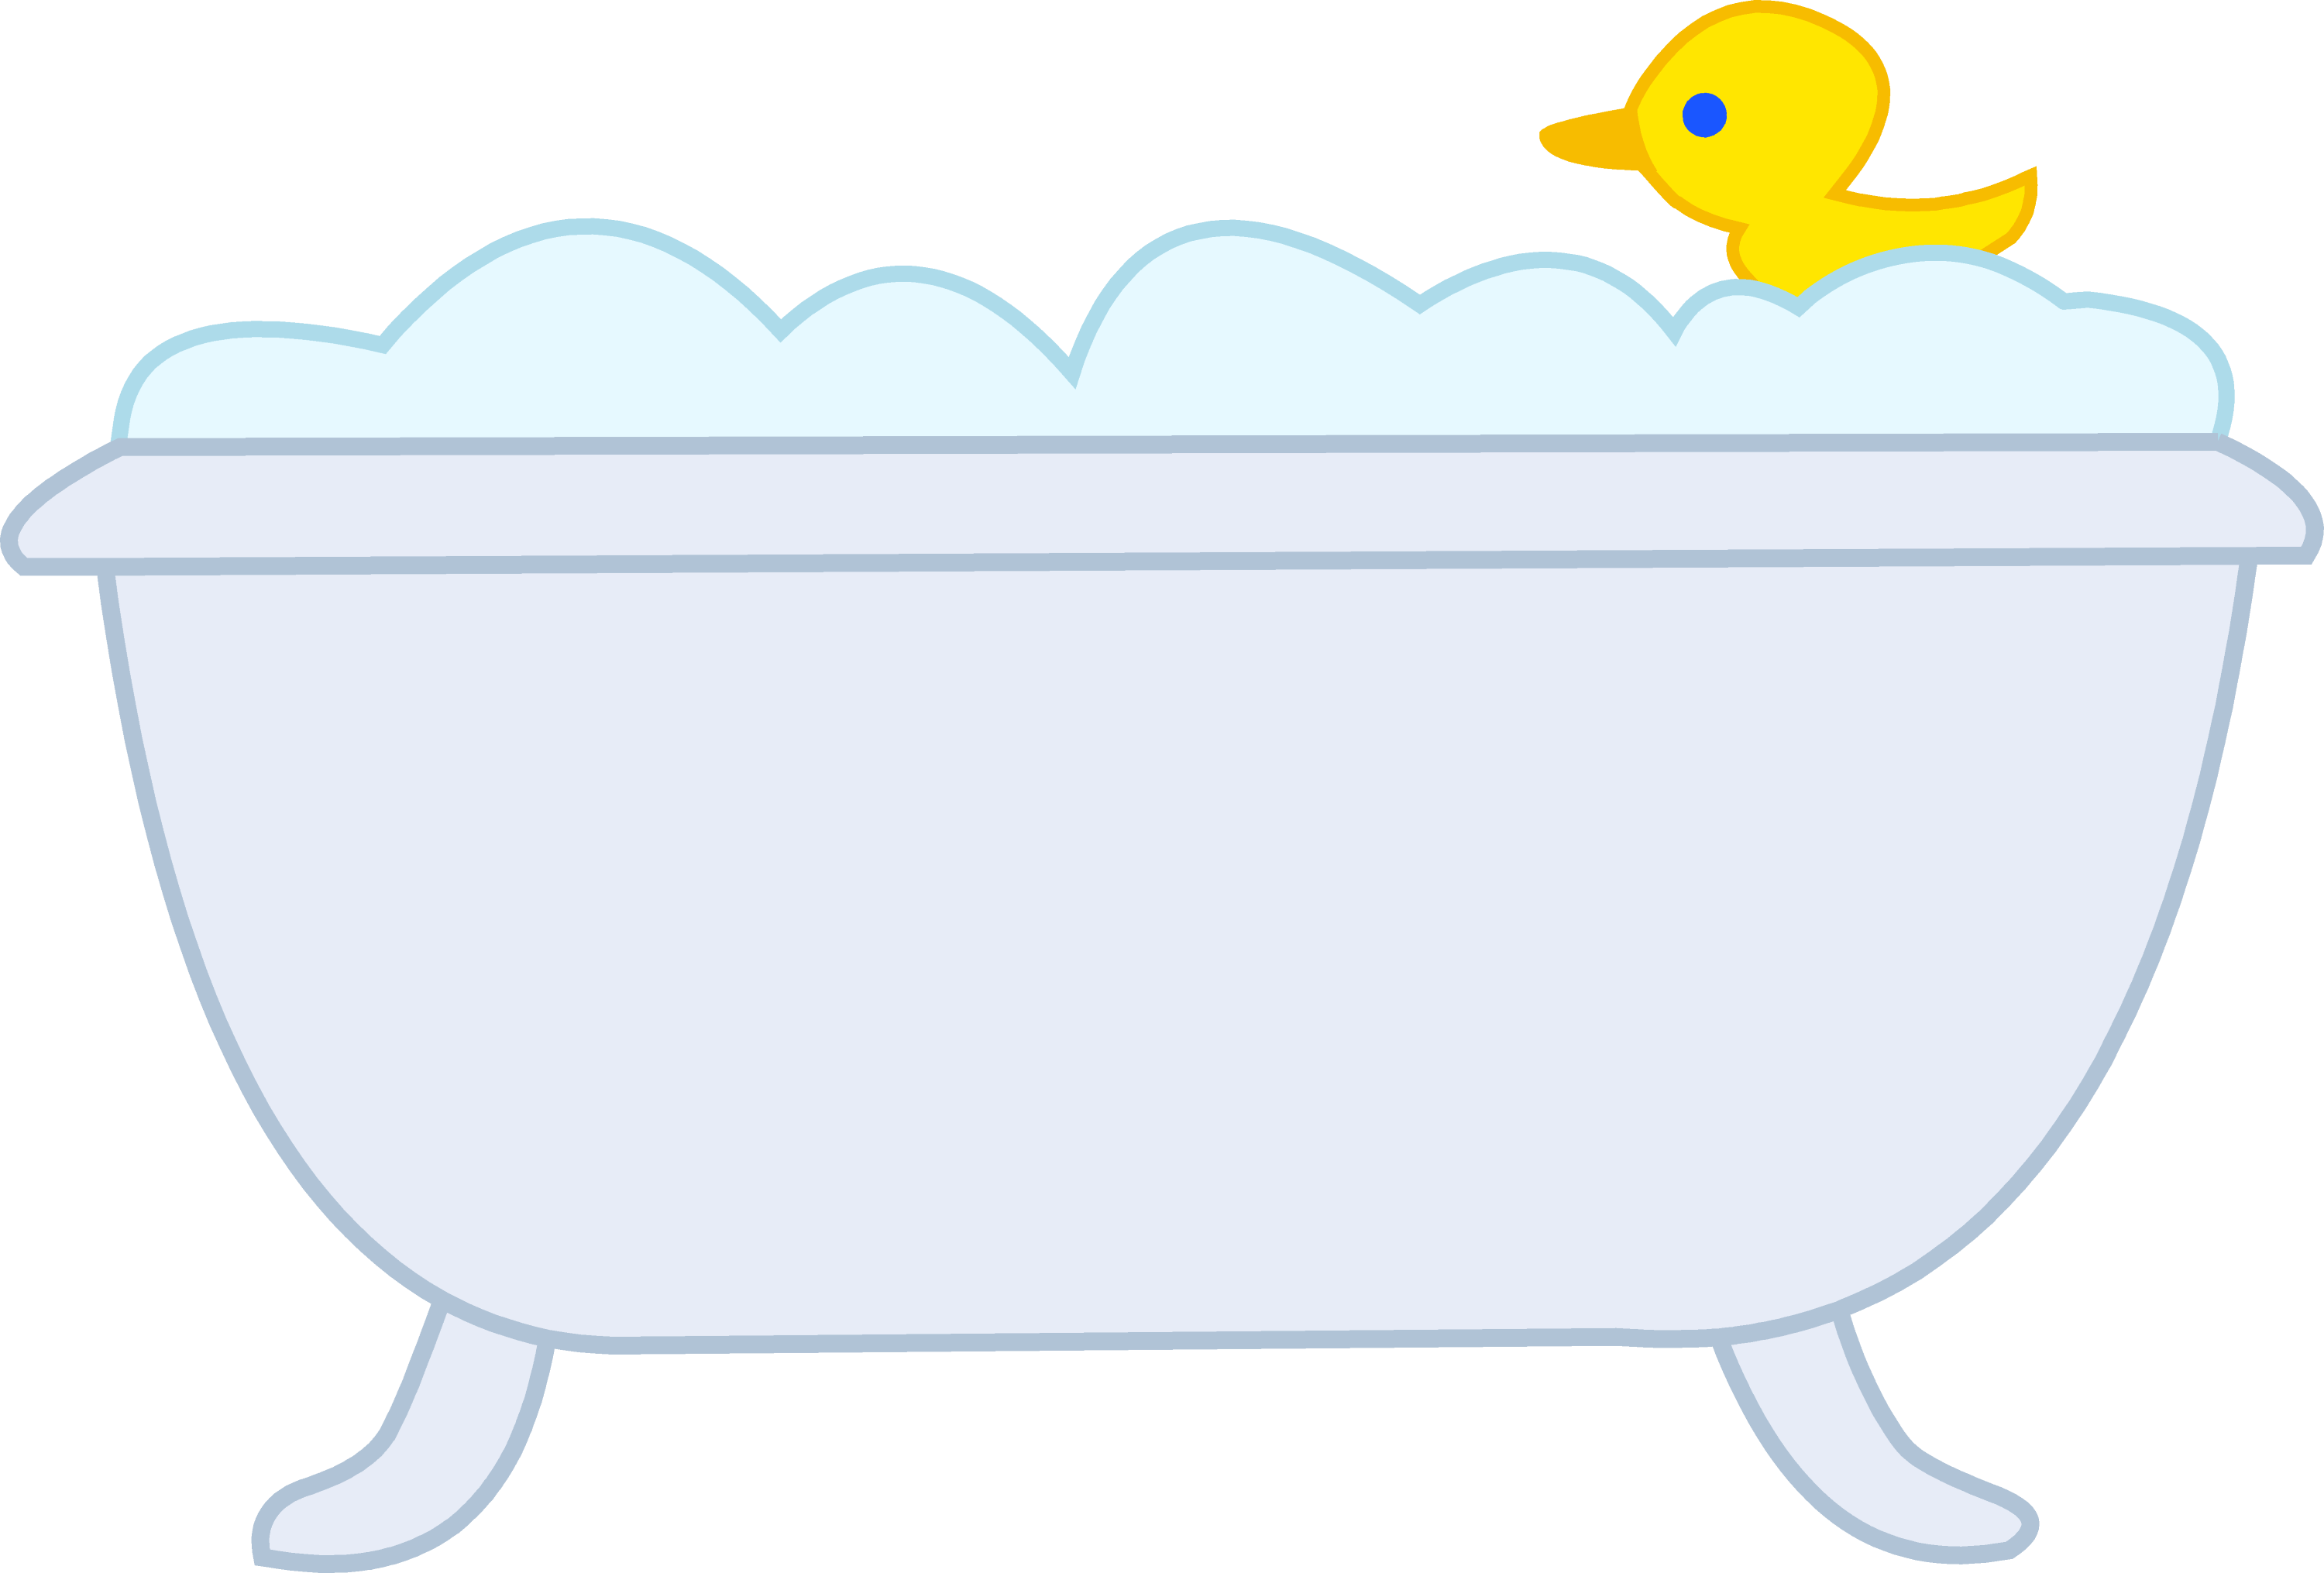 Bubble Bath With Rubber Ducky - Free Clip Art